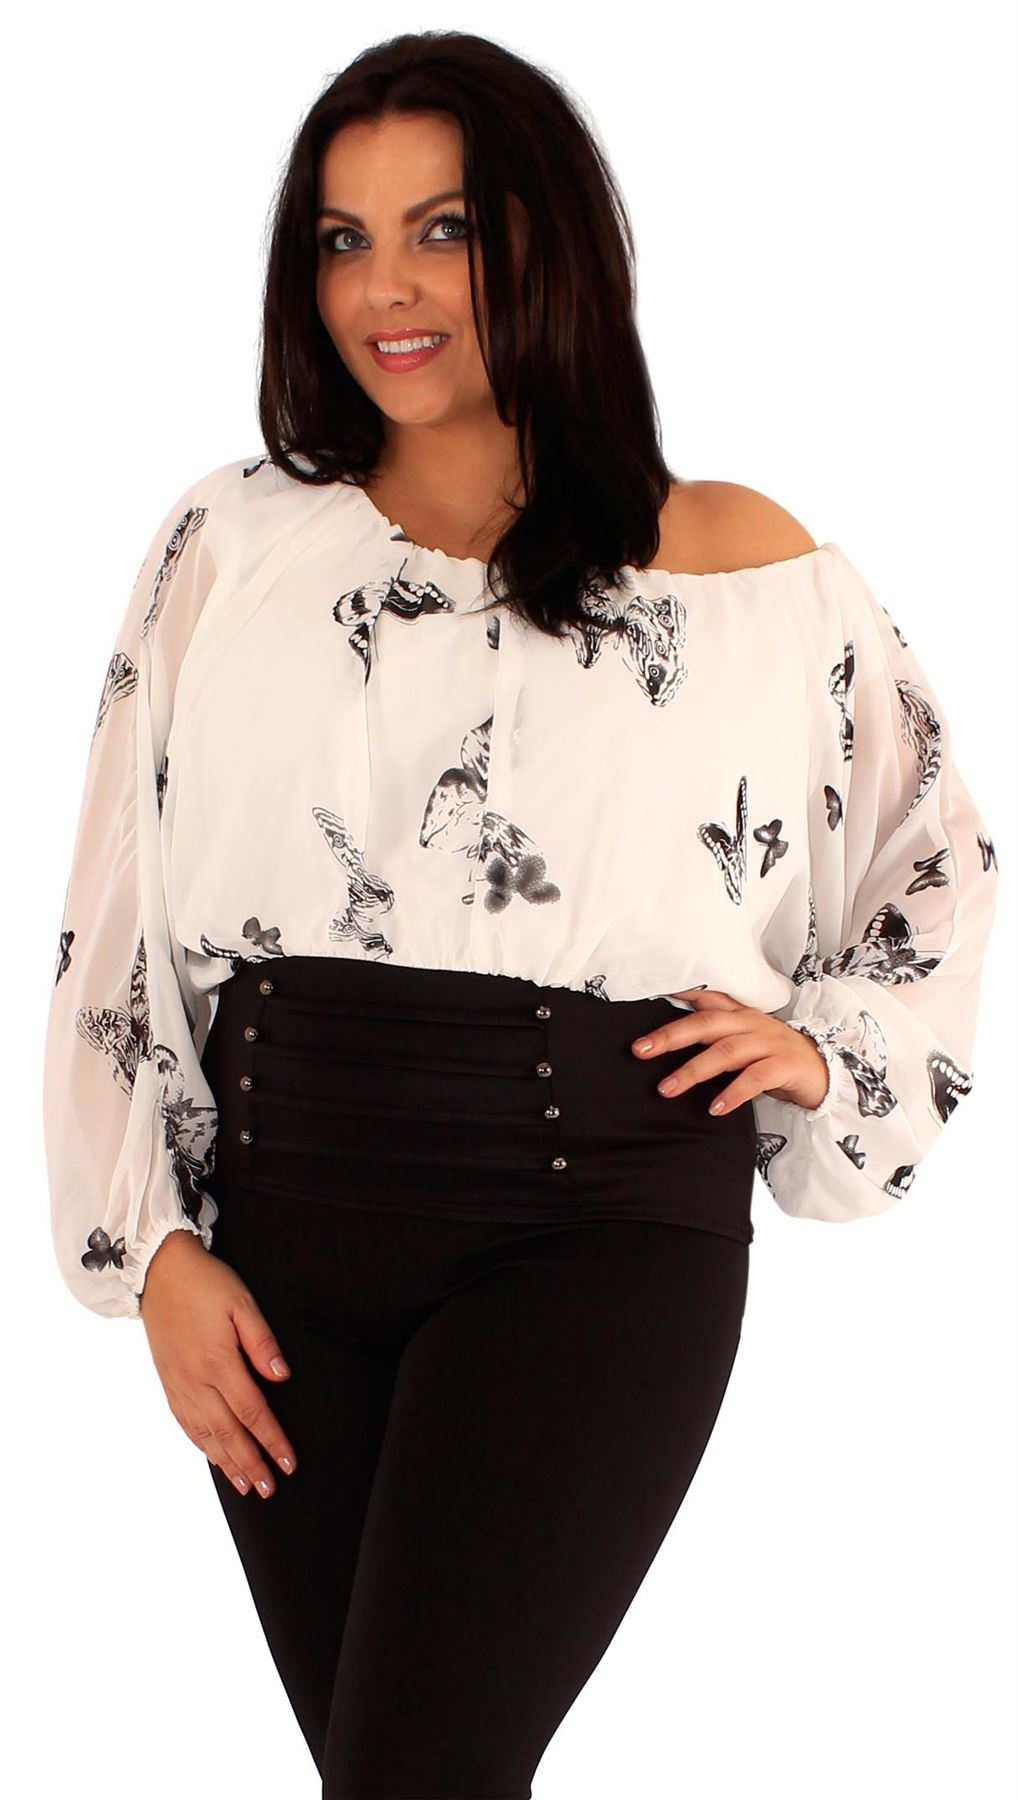 Browse our huge collection of cute tops and trendy shirts! We feature all the latest trends, from sexy clubbing tops to flirty ruffled blouses. So whether you are looking for the perfect fitted T-shirt, clubwear tops, or a strapless camisole, Hot Miami Styles has all the looks you want at unbeatable prices.